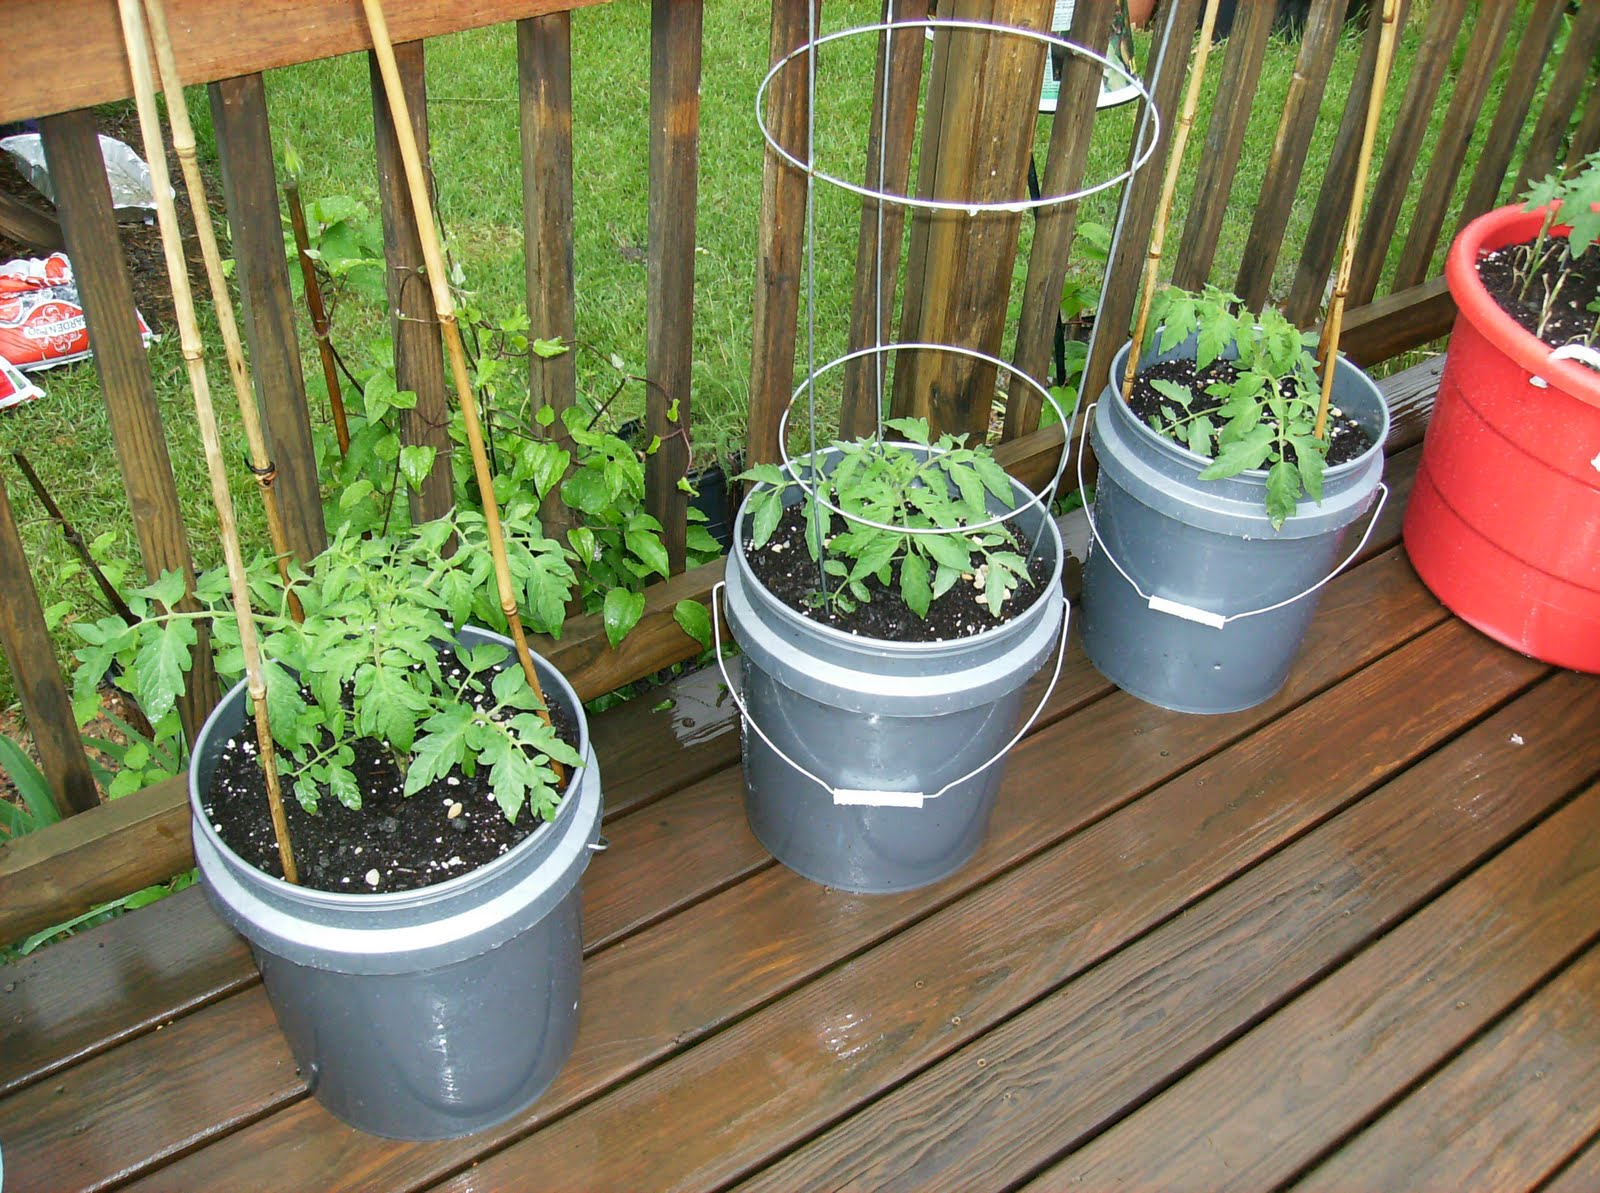 Ordinaire The Tomatoes Are In 5 Gallon Paint Buckets. I Have A Krim, Rutgers, And  Black Plum.